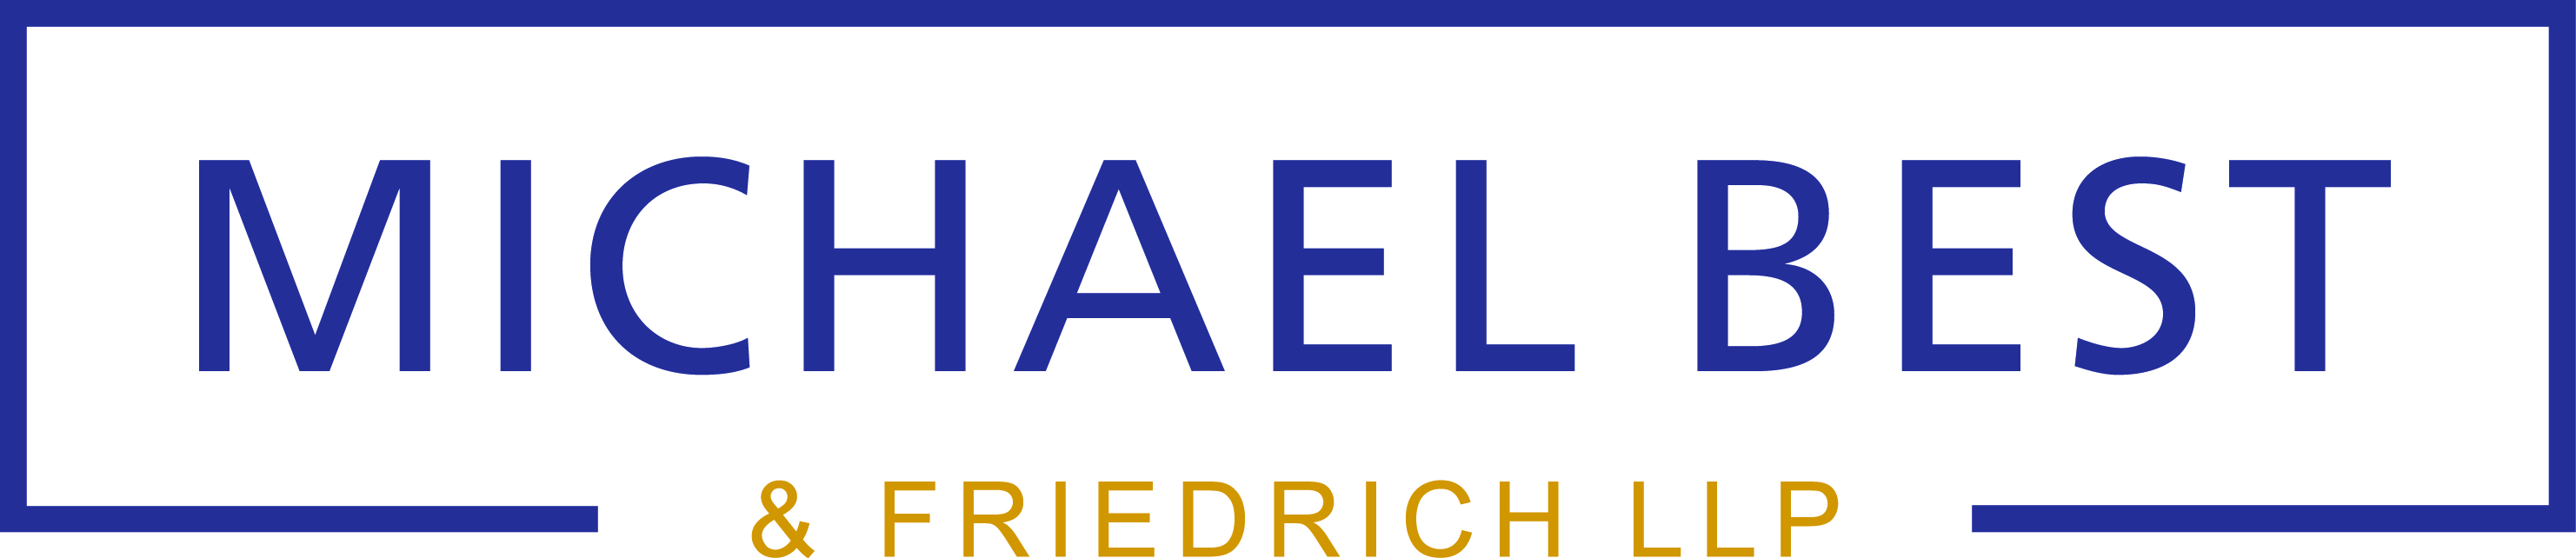 Michael Best & Friedrich LLP